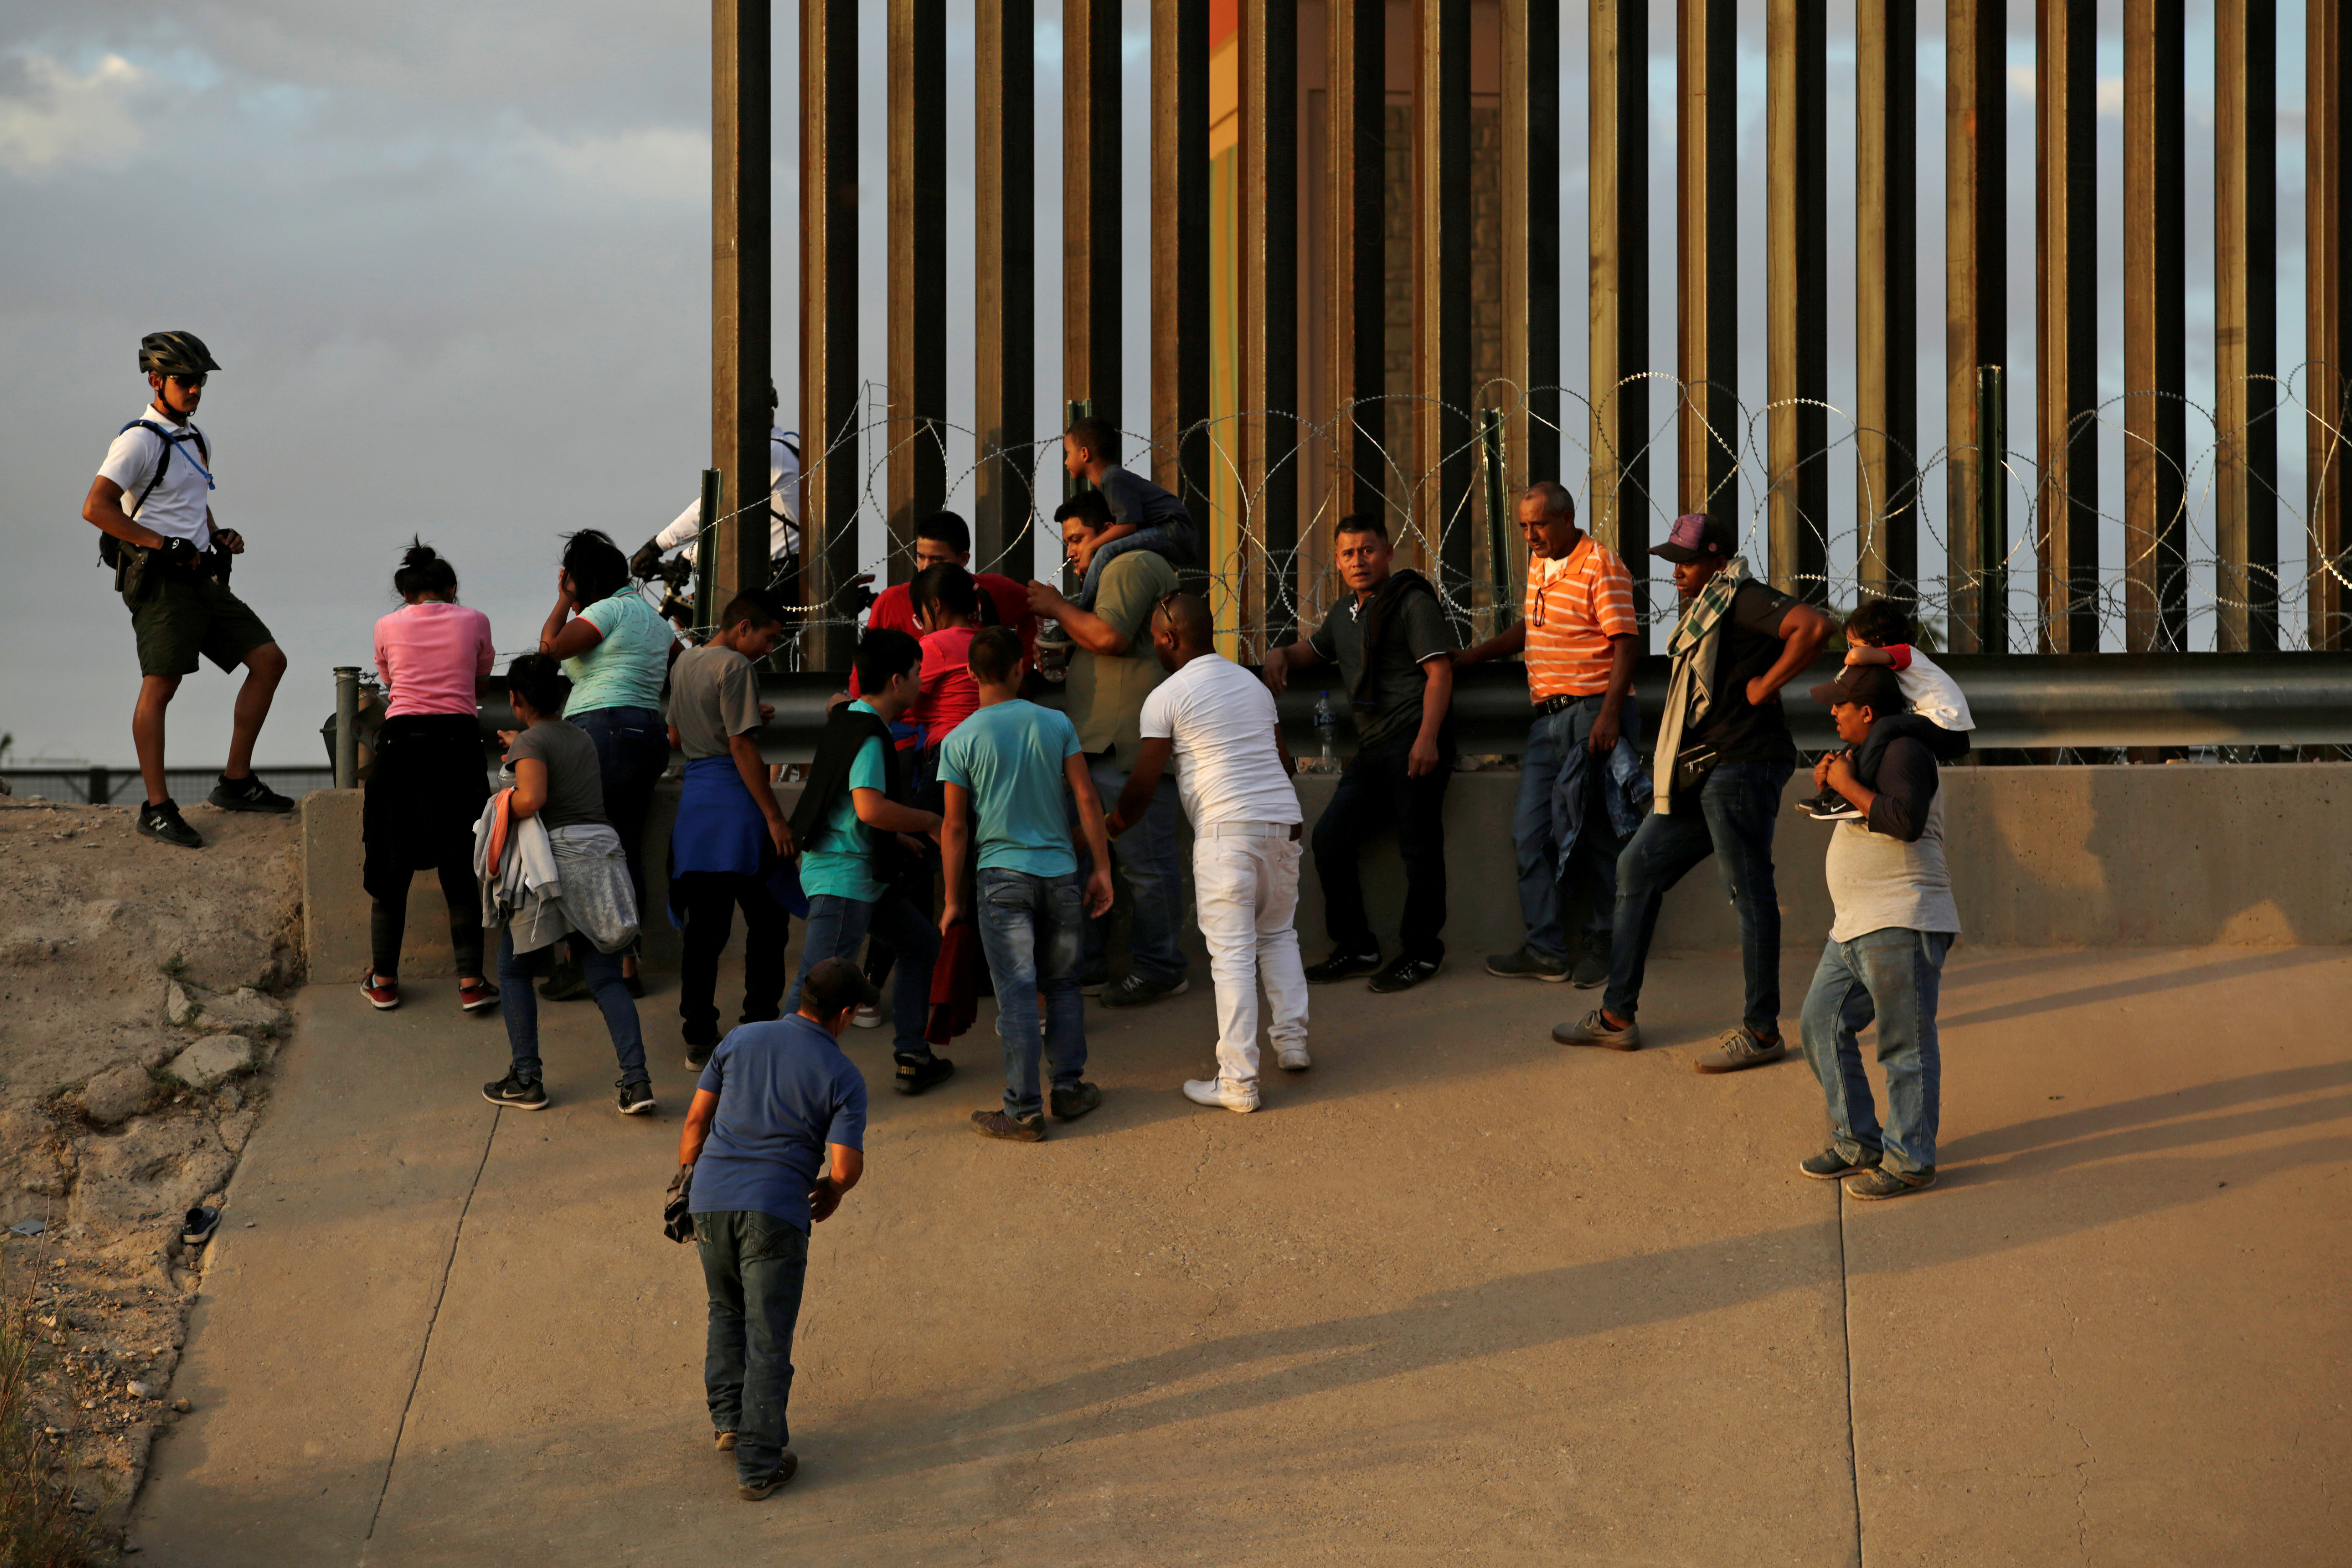 A U.S. Customs and Border Protection (CBP) agent stands next to migrants who crossed illegally into El Paso, Texas, U.S. to turn themselves in to ask for asylum, as seen from Ciudad Juarez, Mexico July 31, 2019. REUTERS/Jose Luis Gonzalez